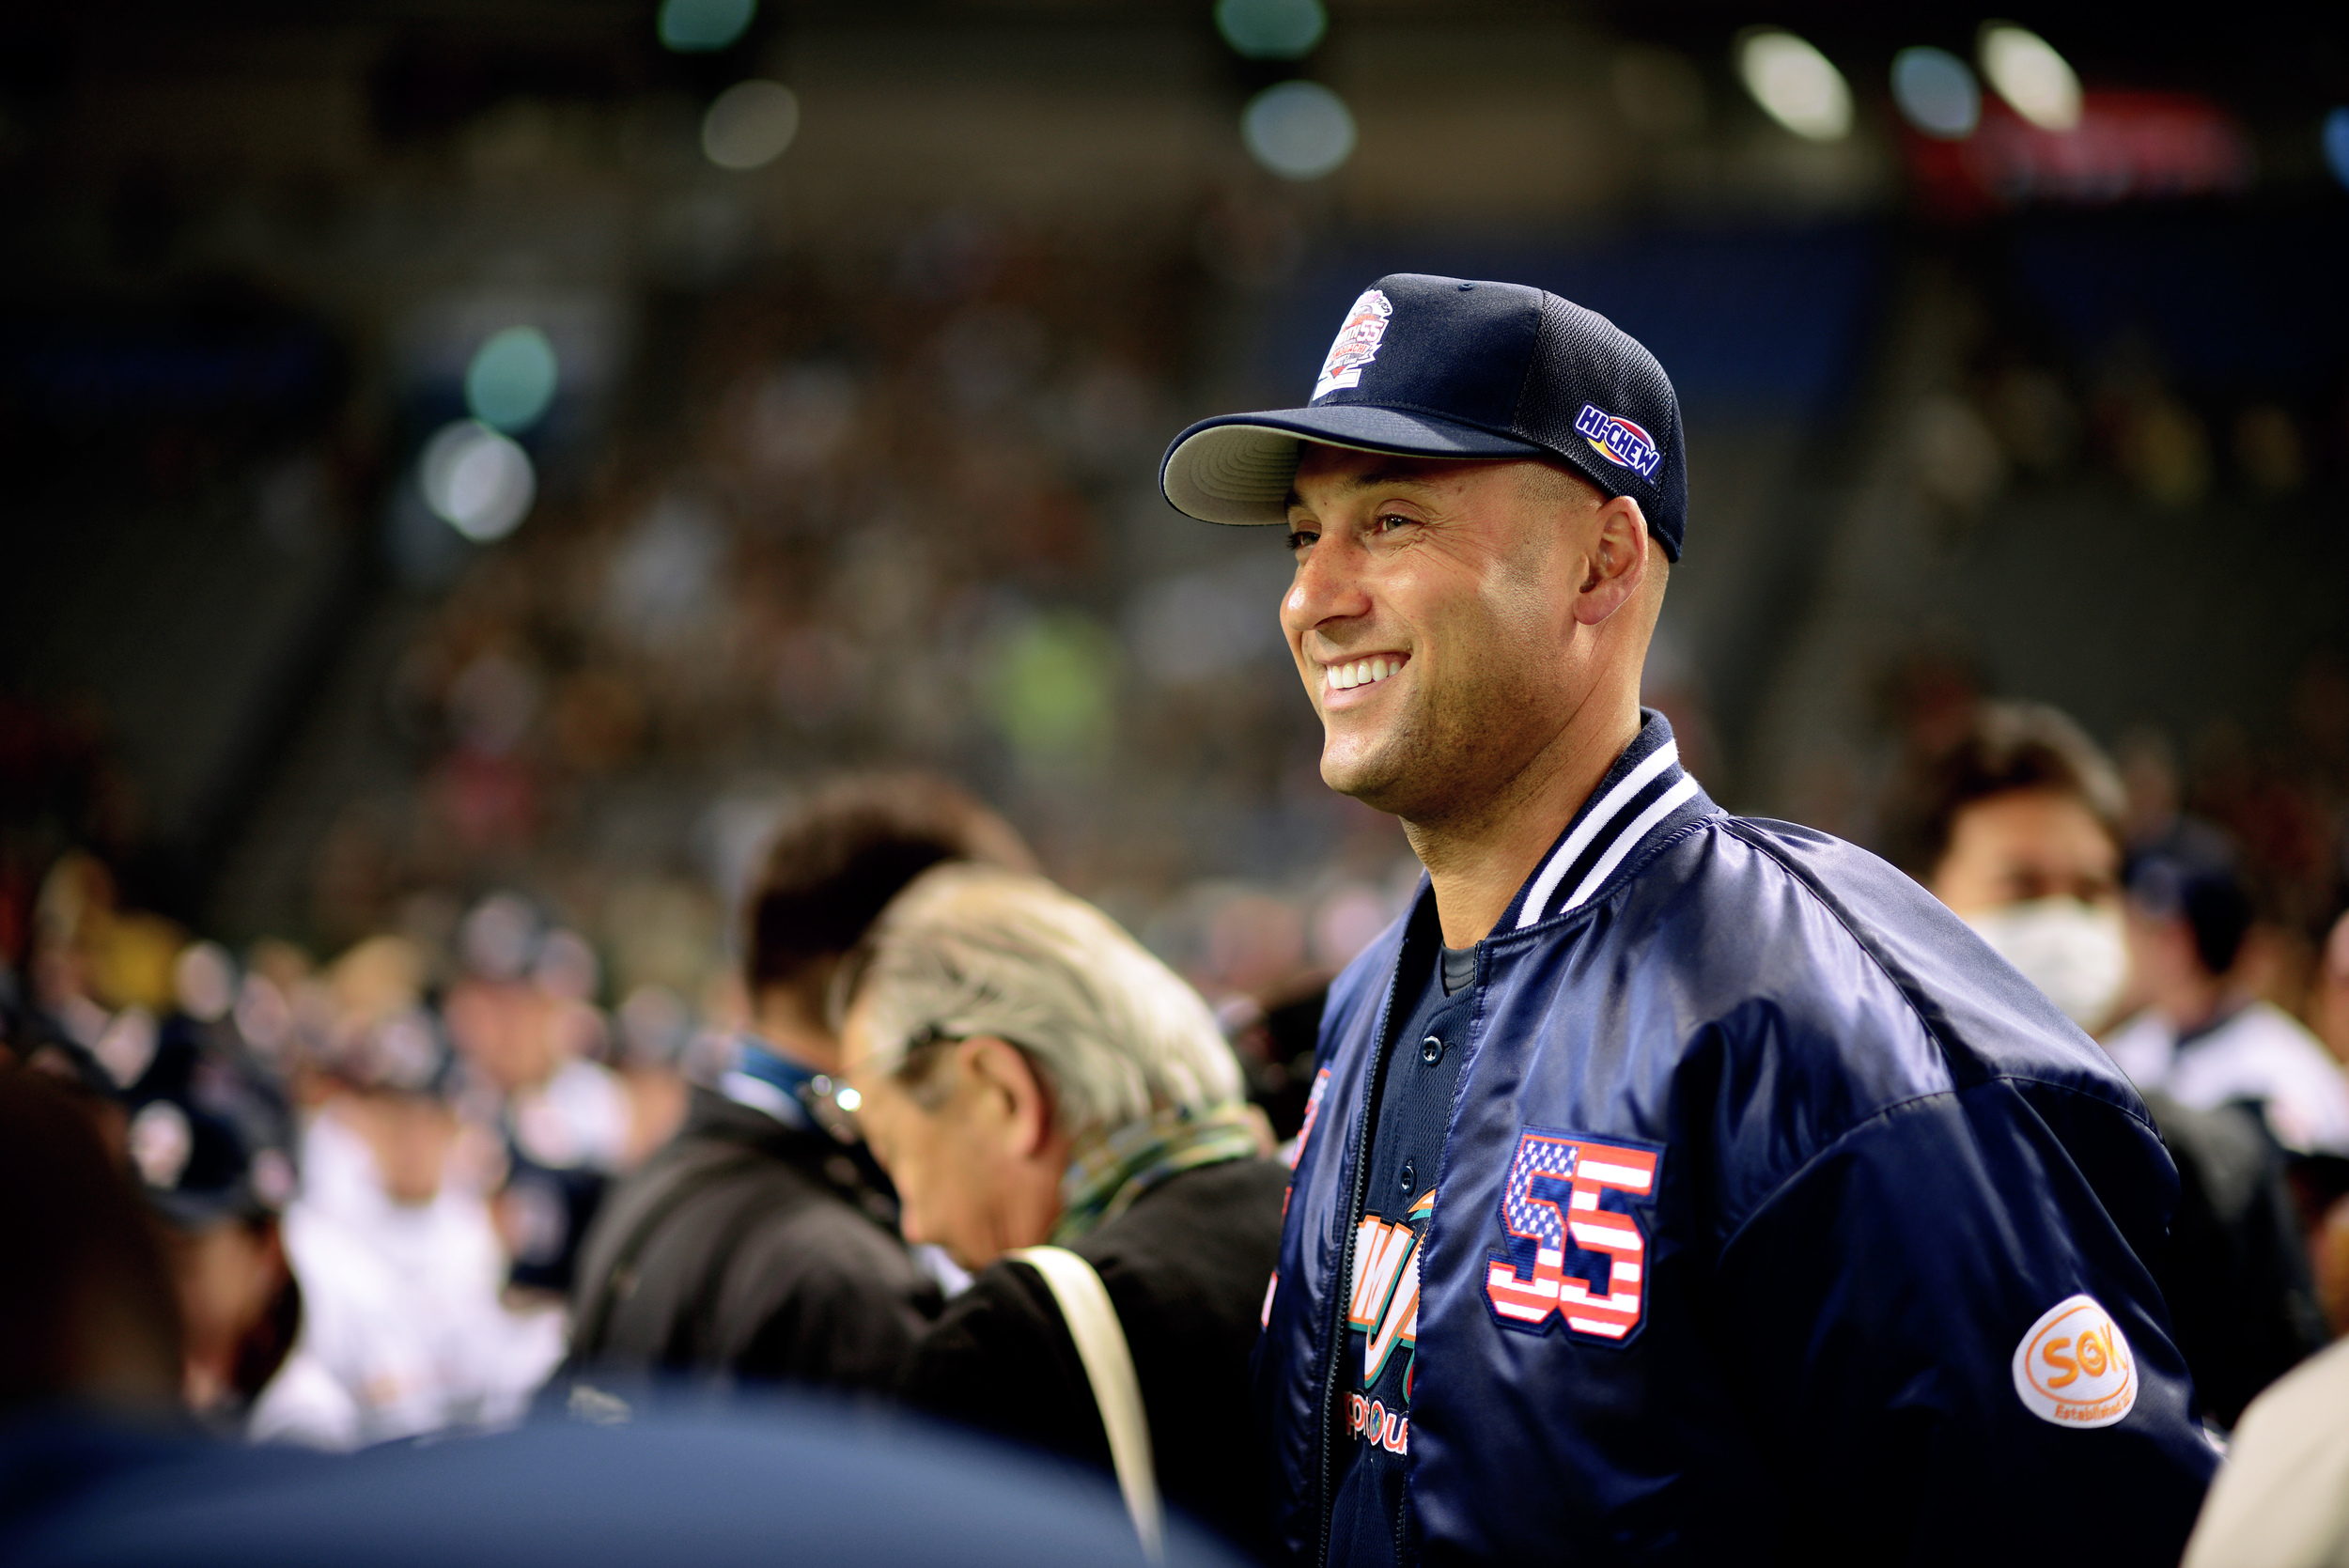 Derek Jeter, retired New York Yankees baseball player, walks to congratulate Team Matsui for their victory in the Tomodachi Charity Baseball Game, March 21, 2015, at the Tokyo Dome, Japan. Team Jeter played against Team Matsui in the three-inning contest, which raised awareness for victims affected by the Great East Japan Earthquake. (U.S. Air Force photo by Airman 1st Class Delano Scott/Released)